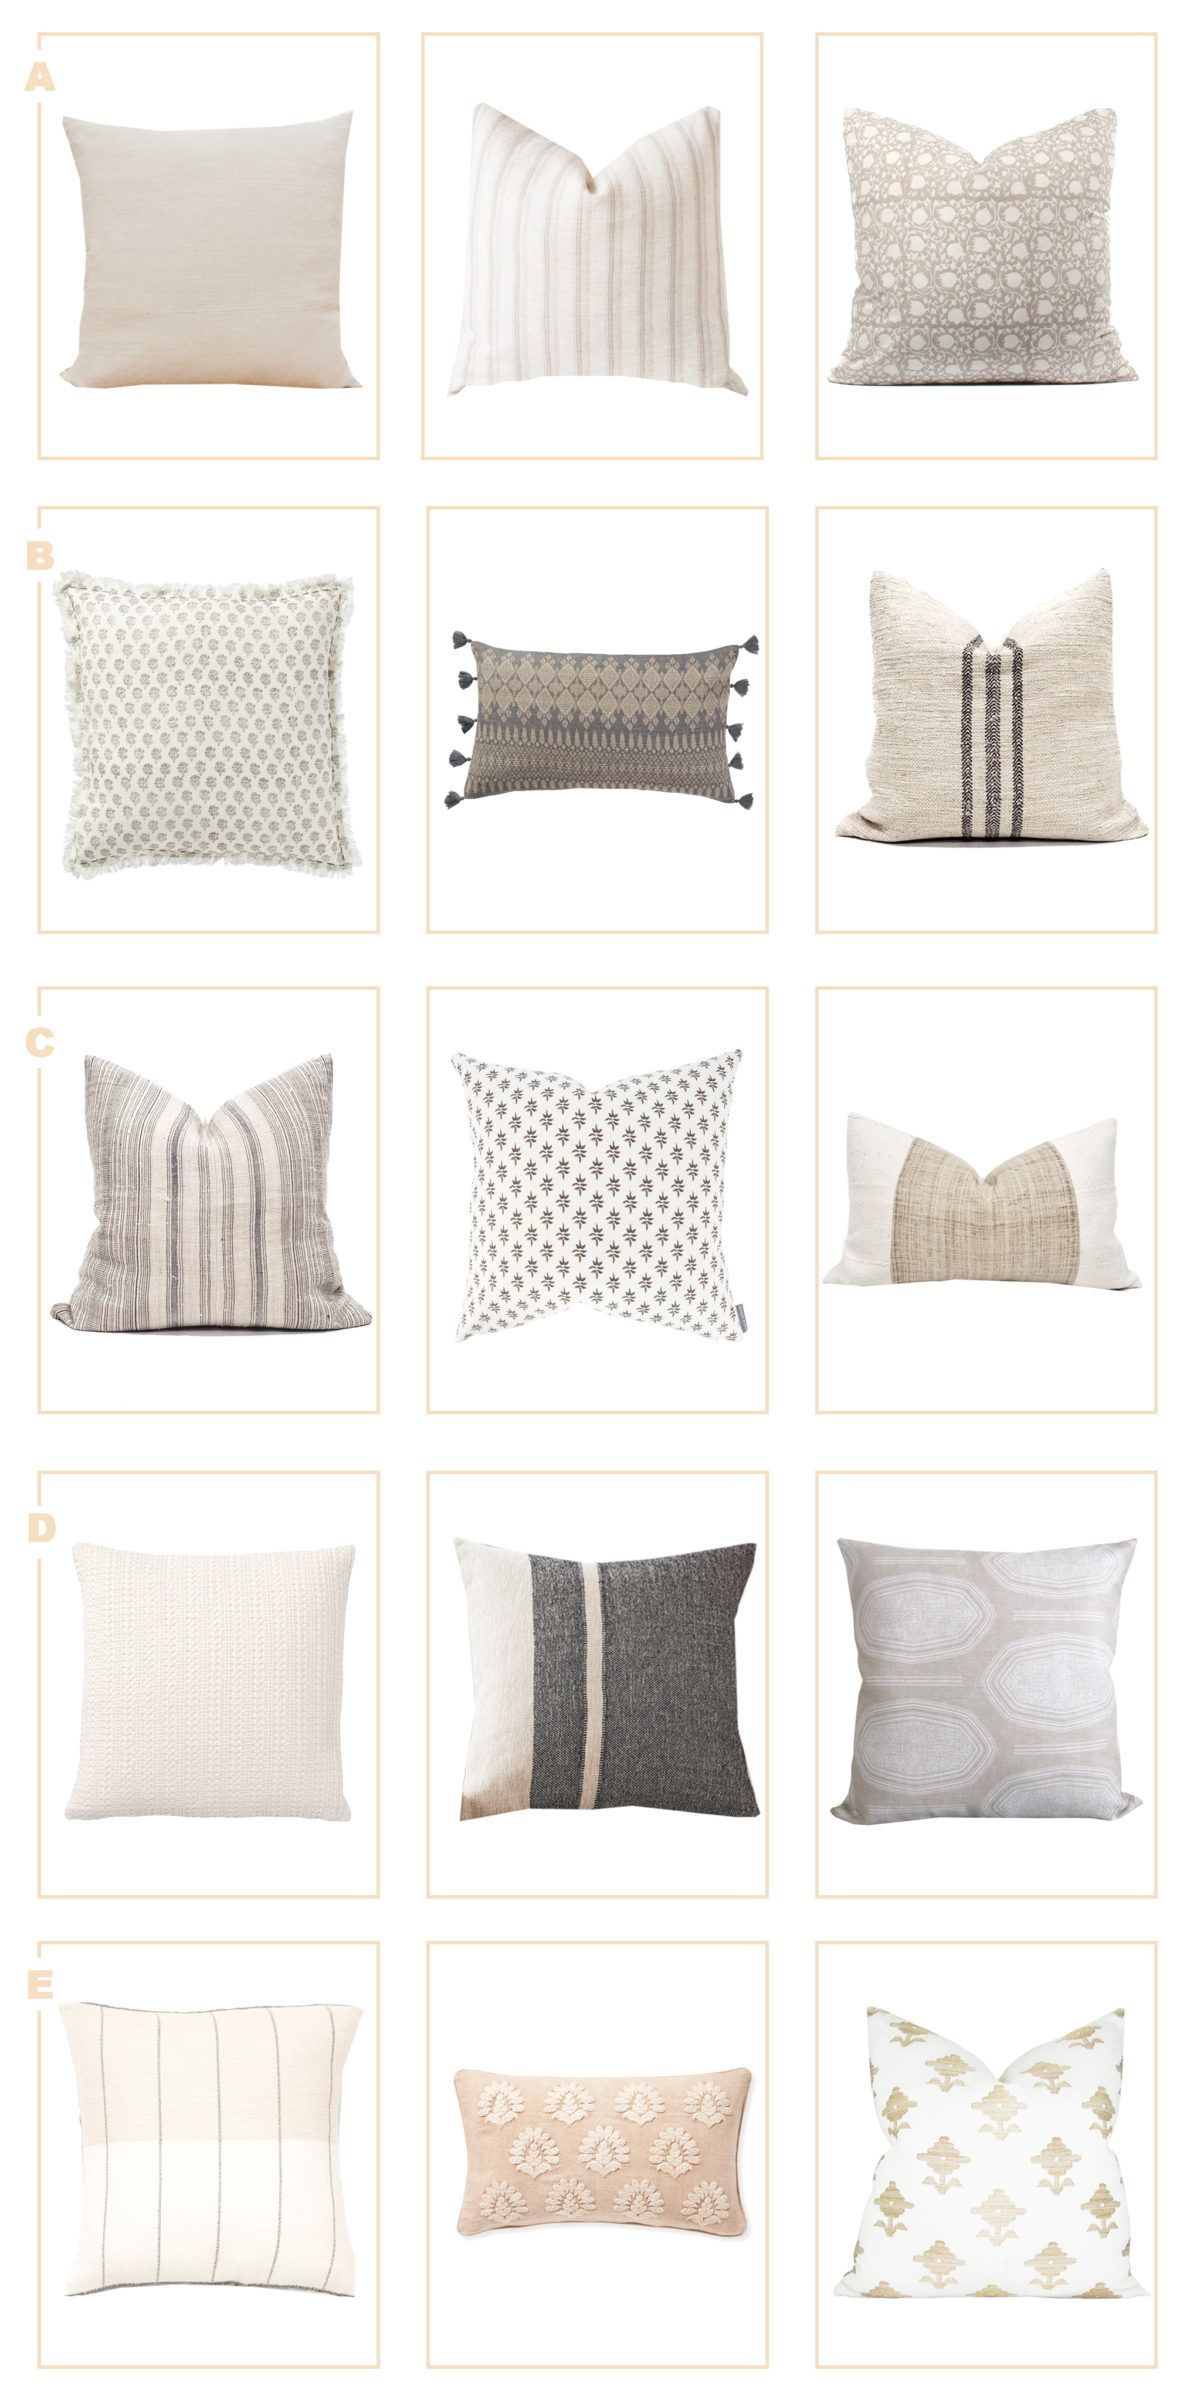 Neutral Pillow Combinations Harlowe James In 2020 Neutral Pillows Throw Pillows Living Room Living Room Pillows #pillows #for #living #room #sofa